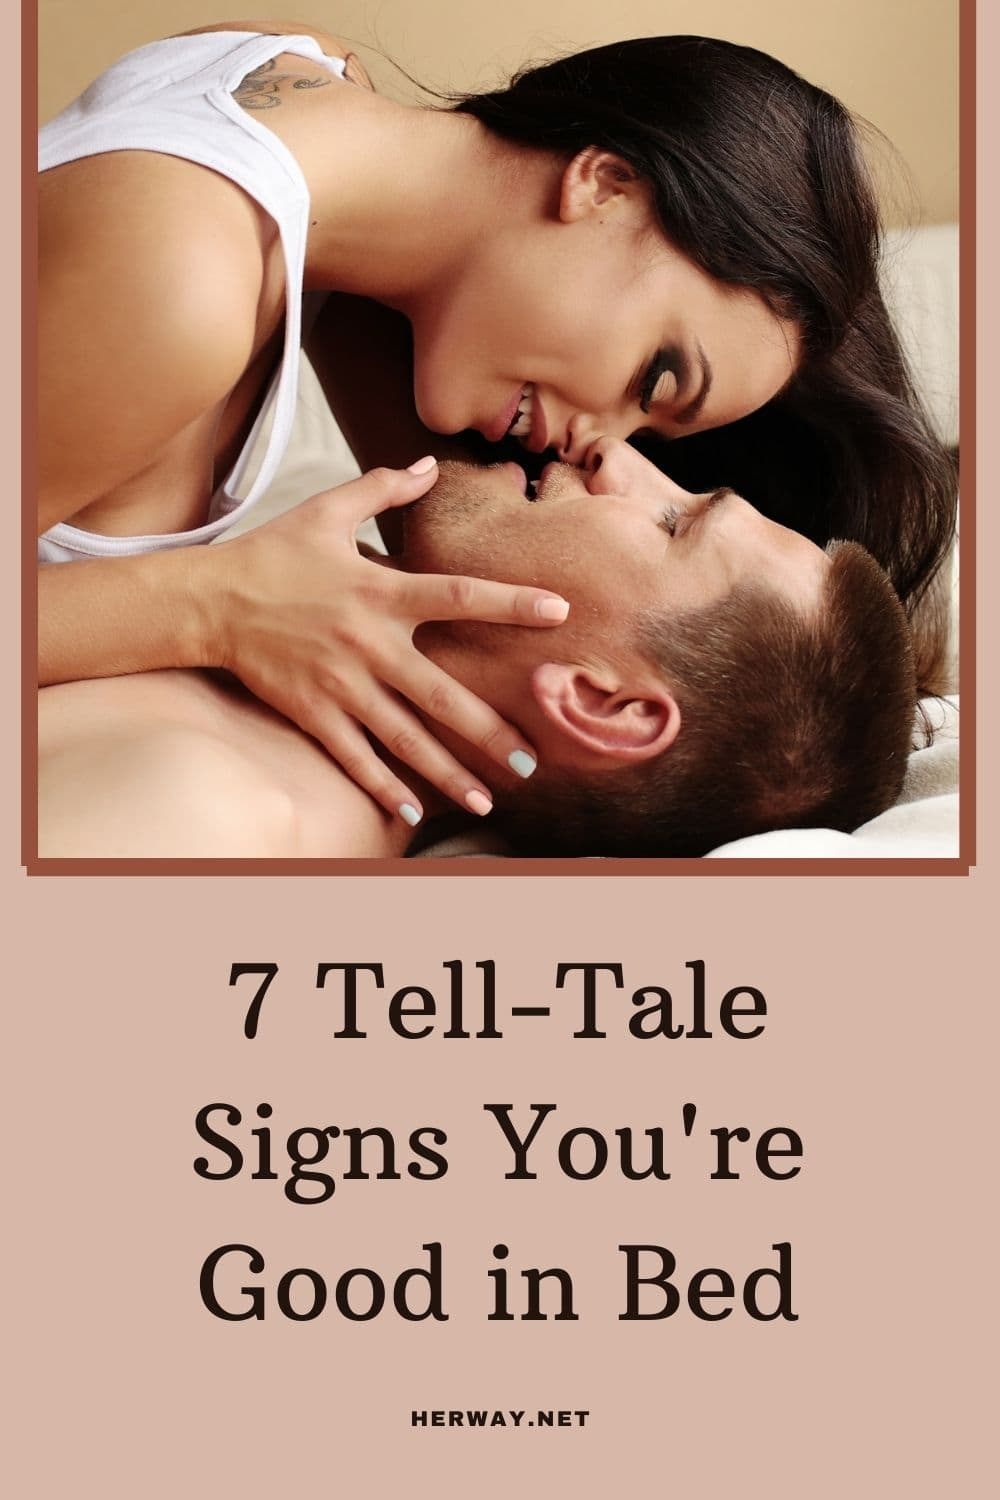 7 Tell-Tale Signs You're Good in Bed